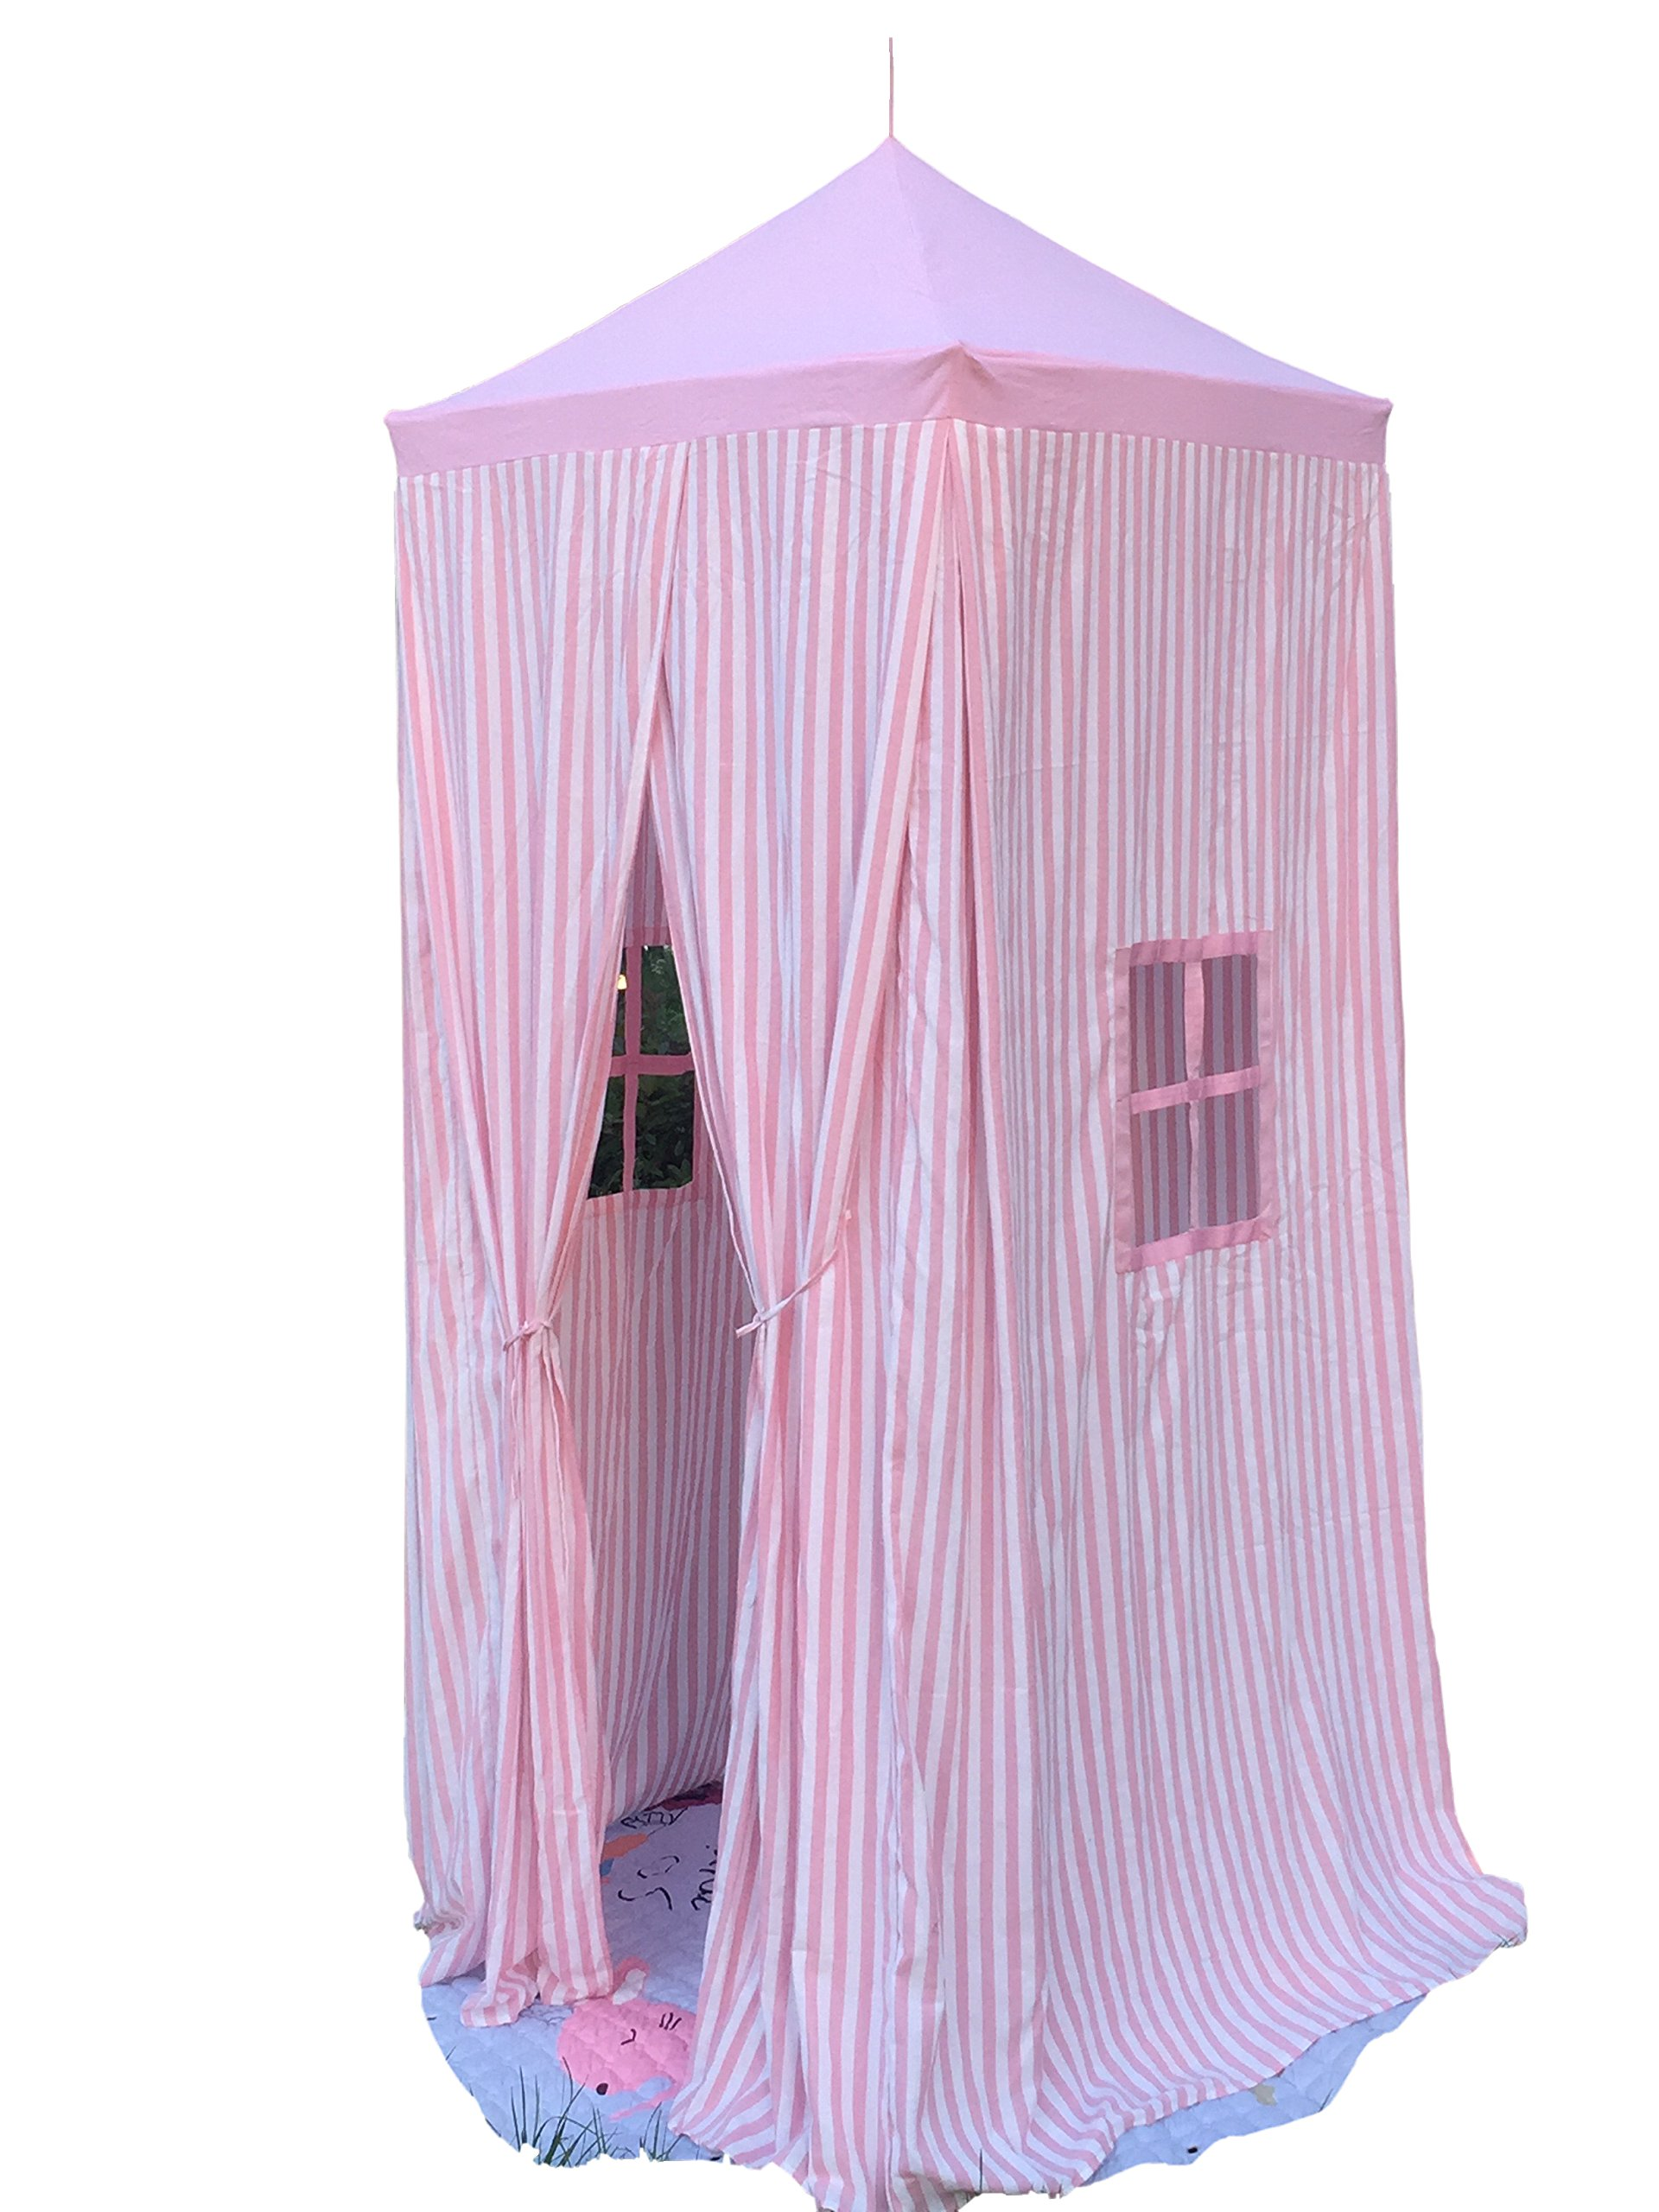 Pericross 7'9'' Square Baldachin Kids Reading Play Tent with Dual Windows (Pink Stripes)